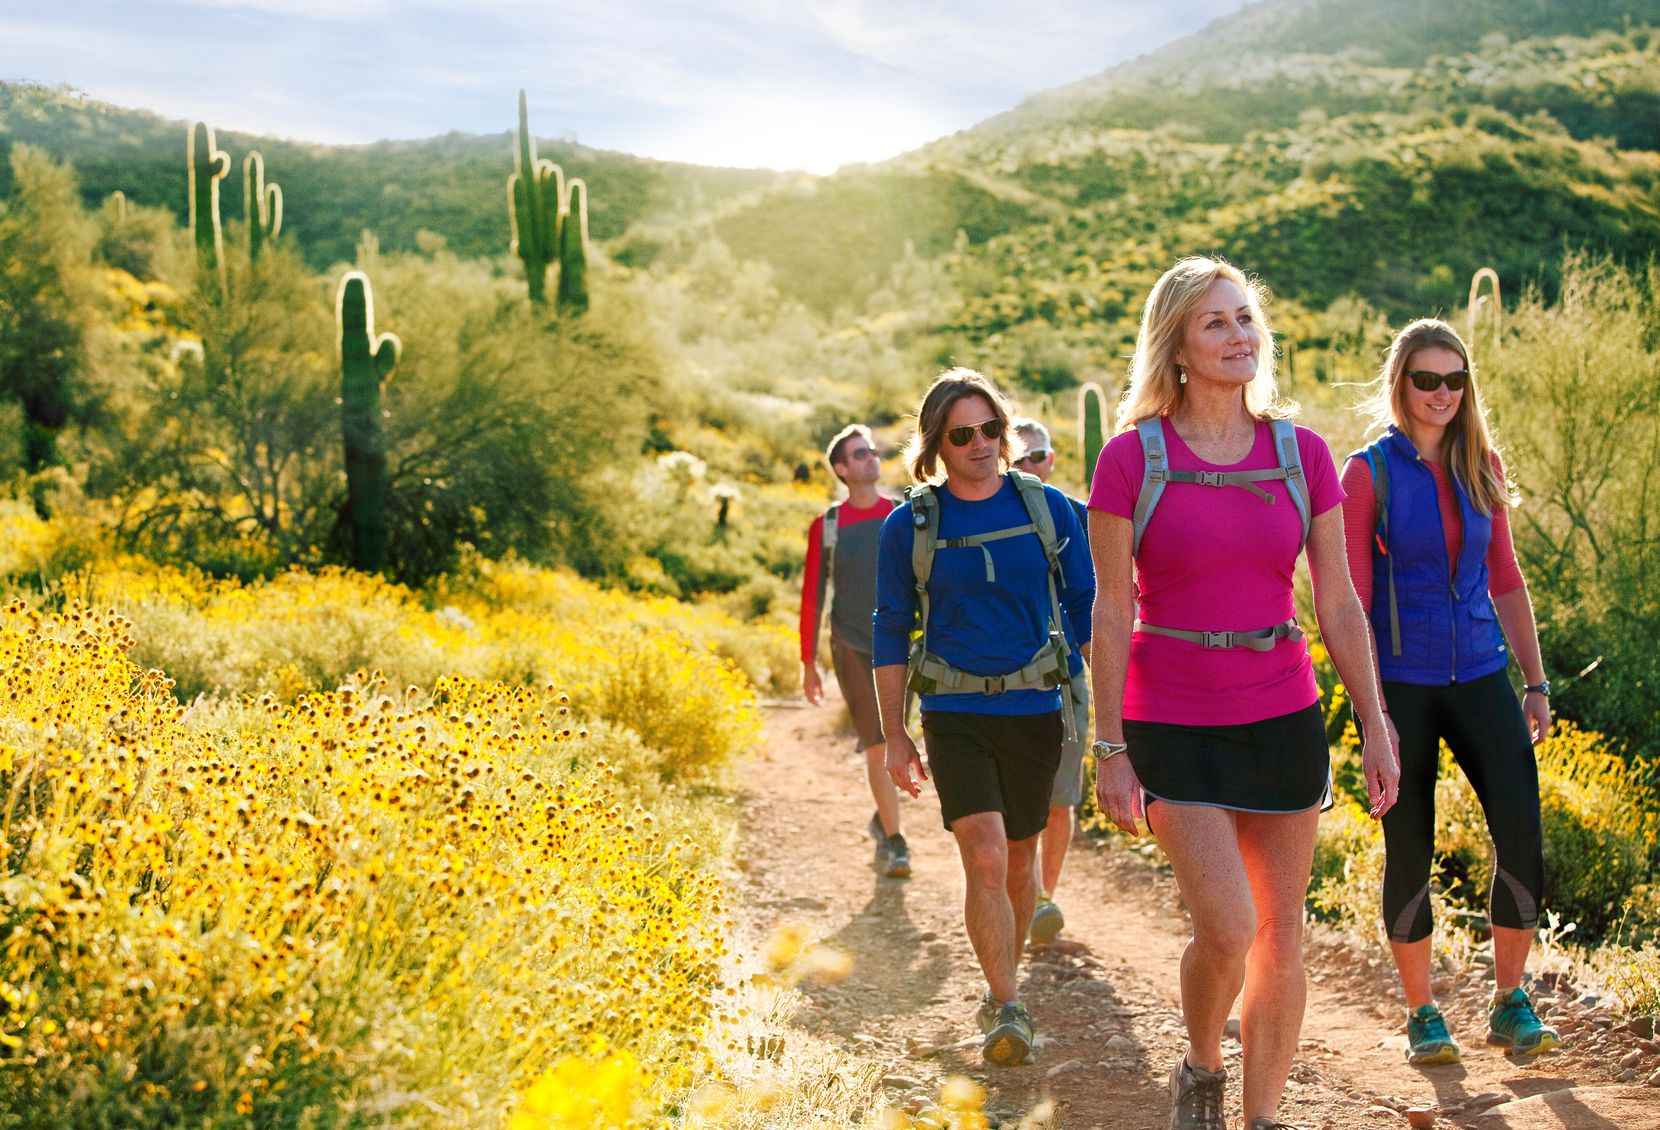 Hiking is the cheapest, easiest and most up-close-and-personal way to experience the Arizona desert.